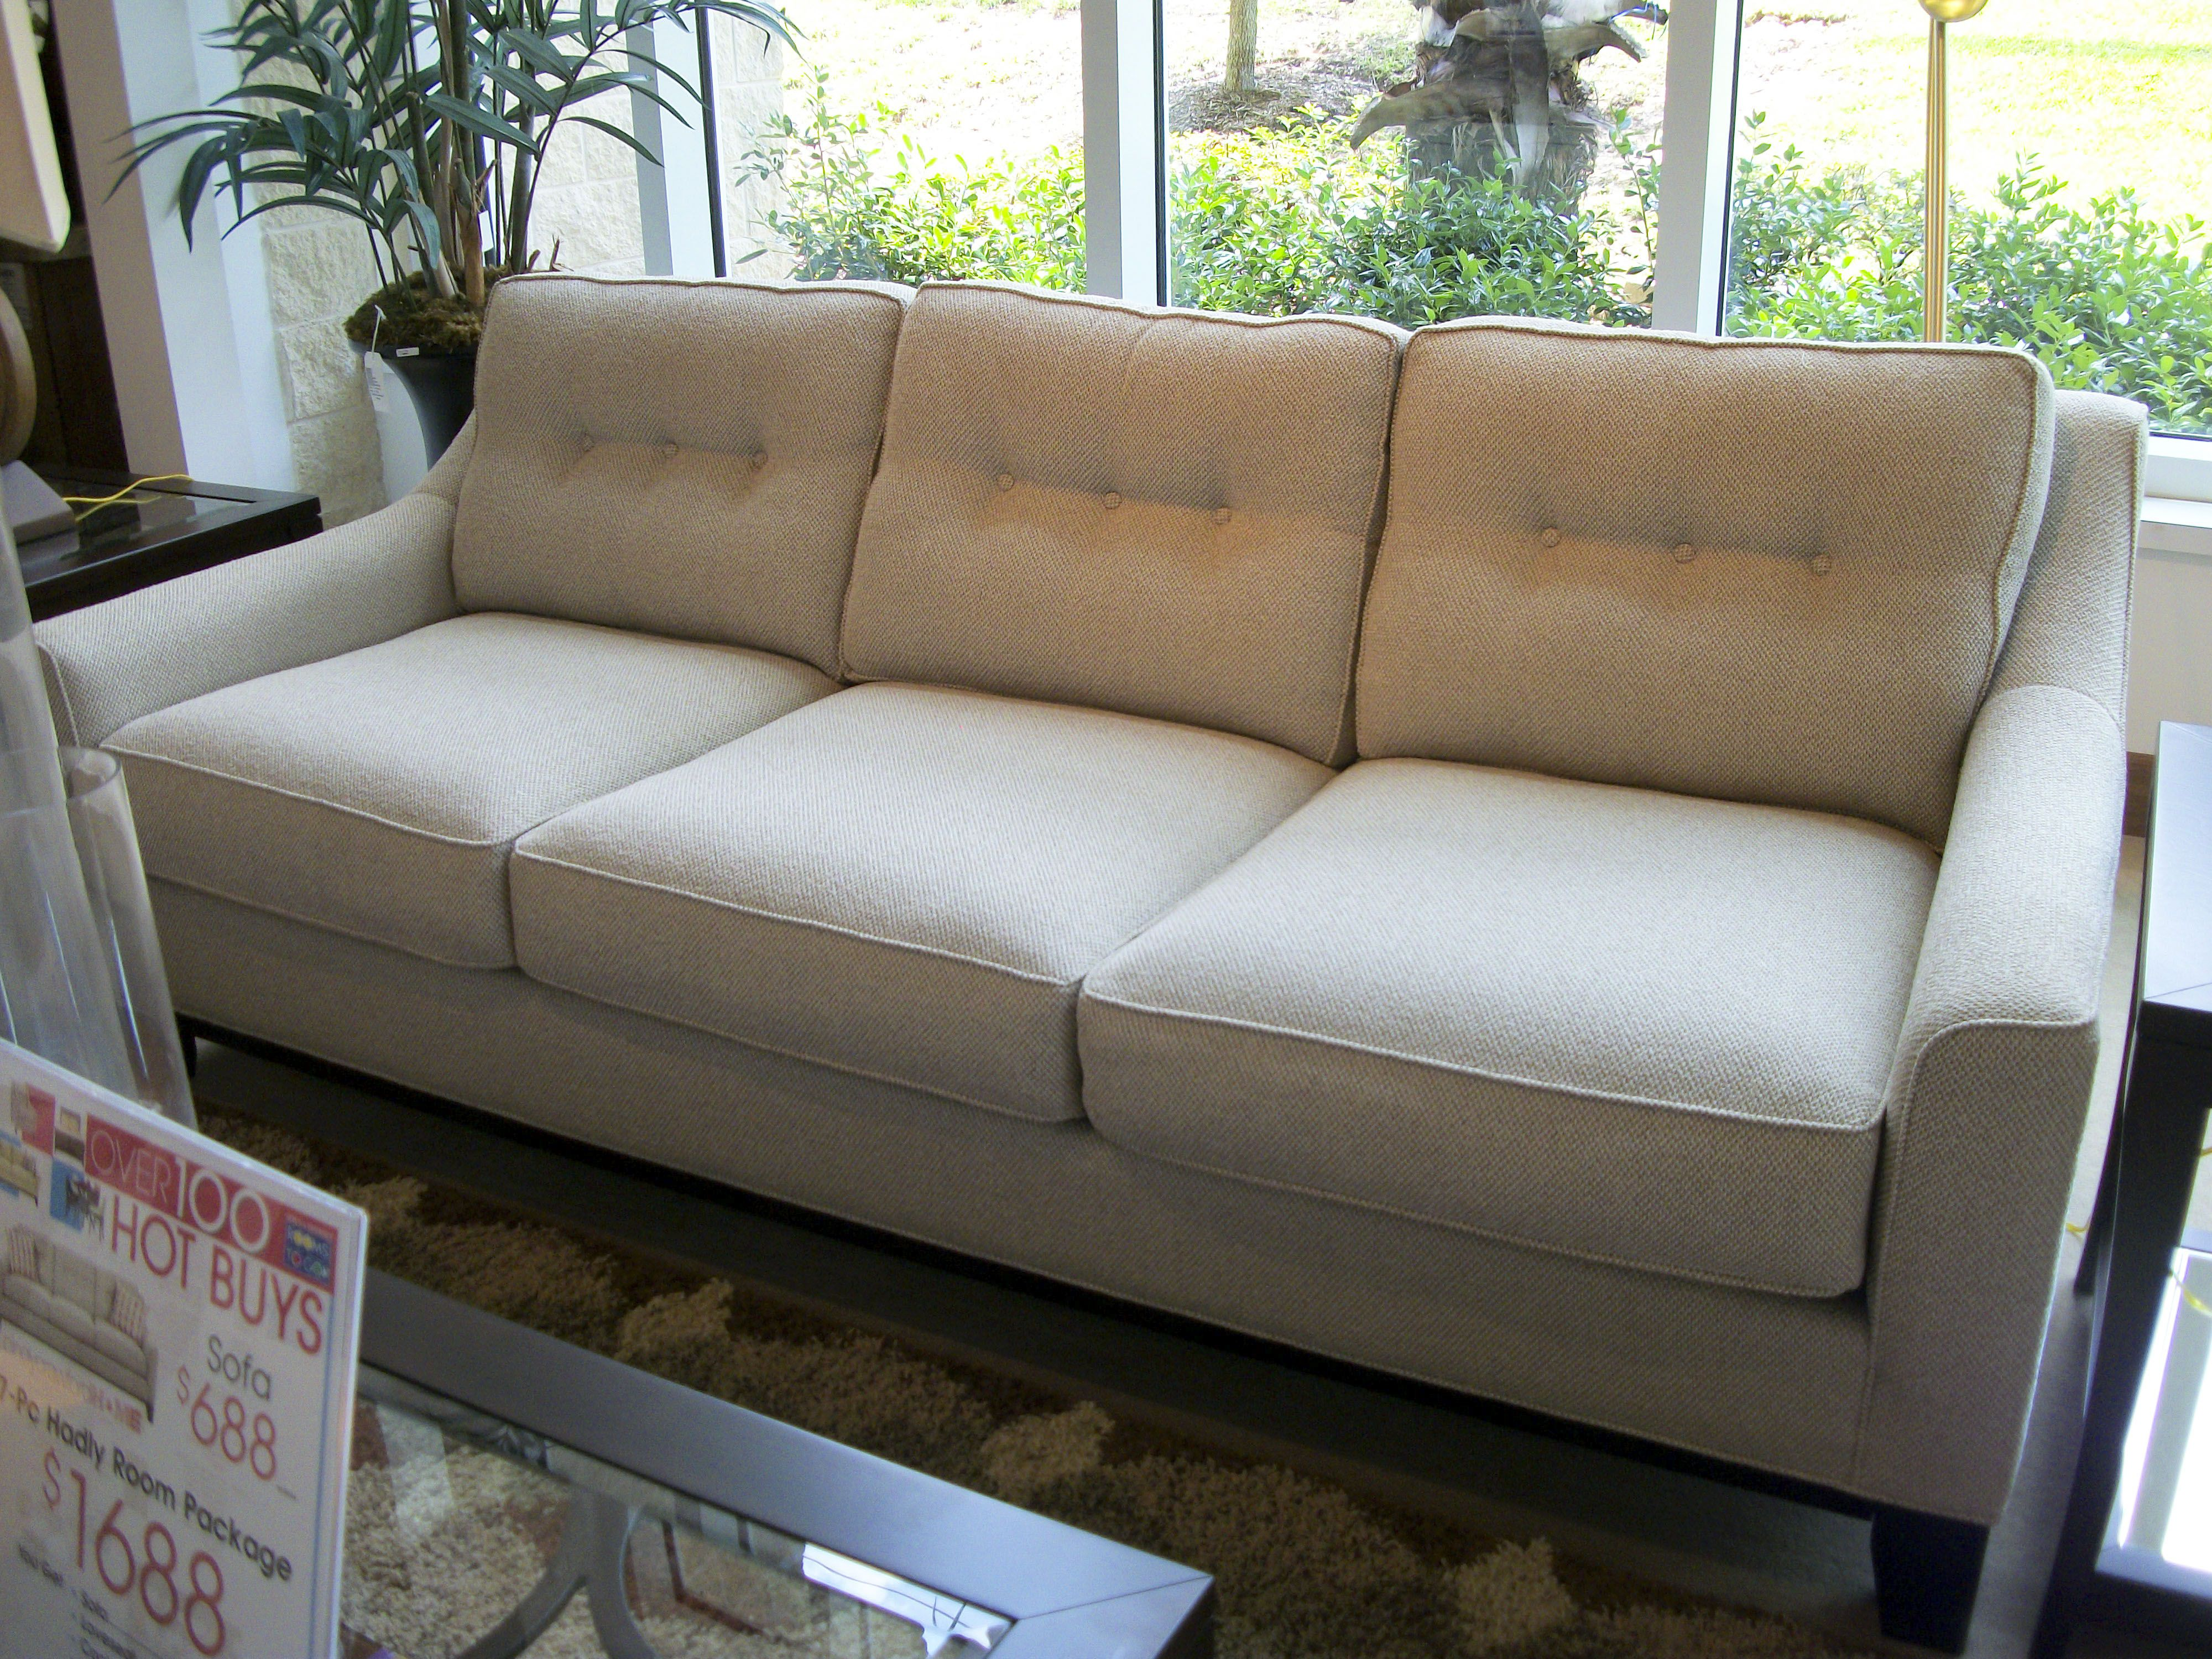 Burlap Sofa Chair Leather Reviews Australia Cool Couch Unique 74 With Additional